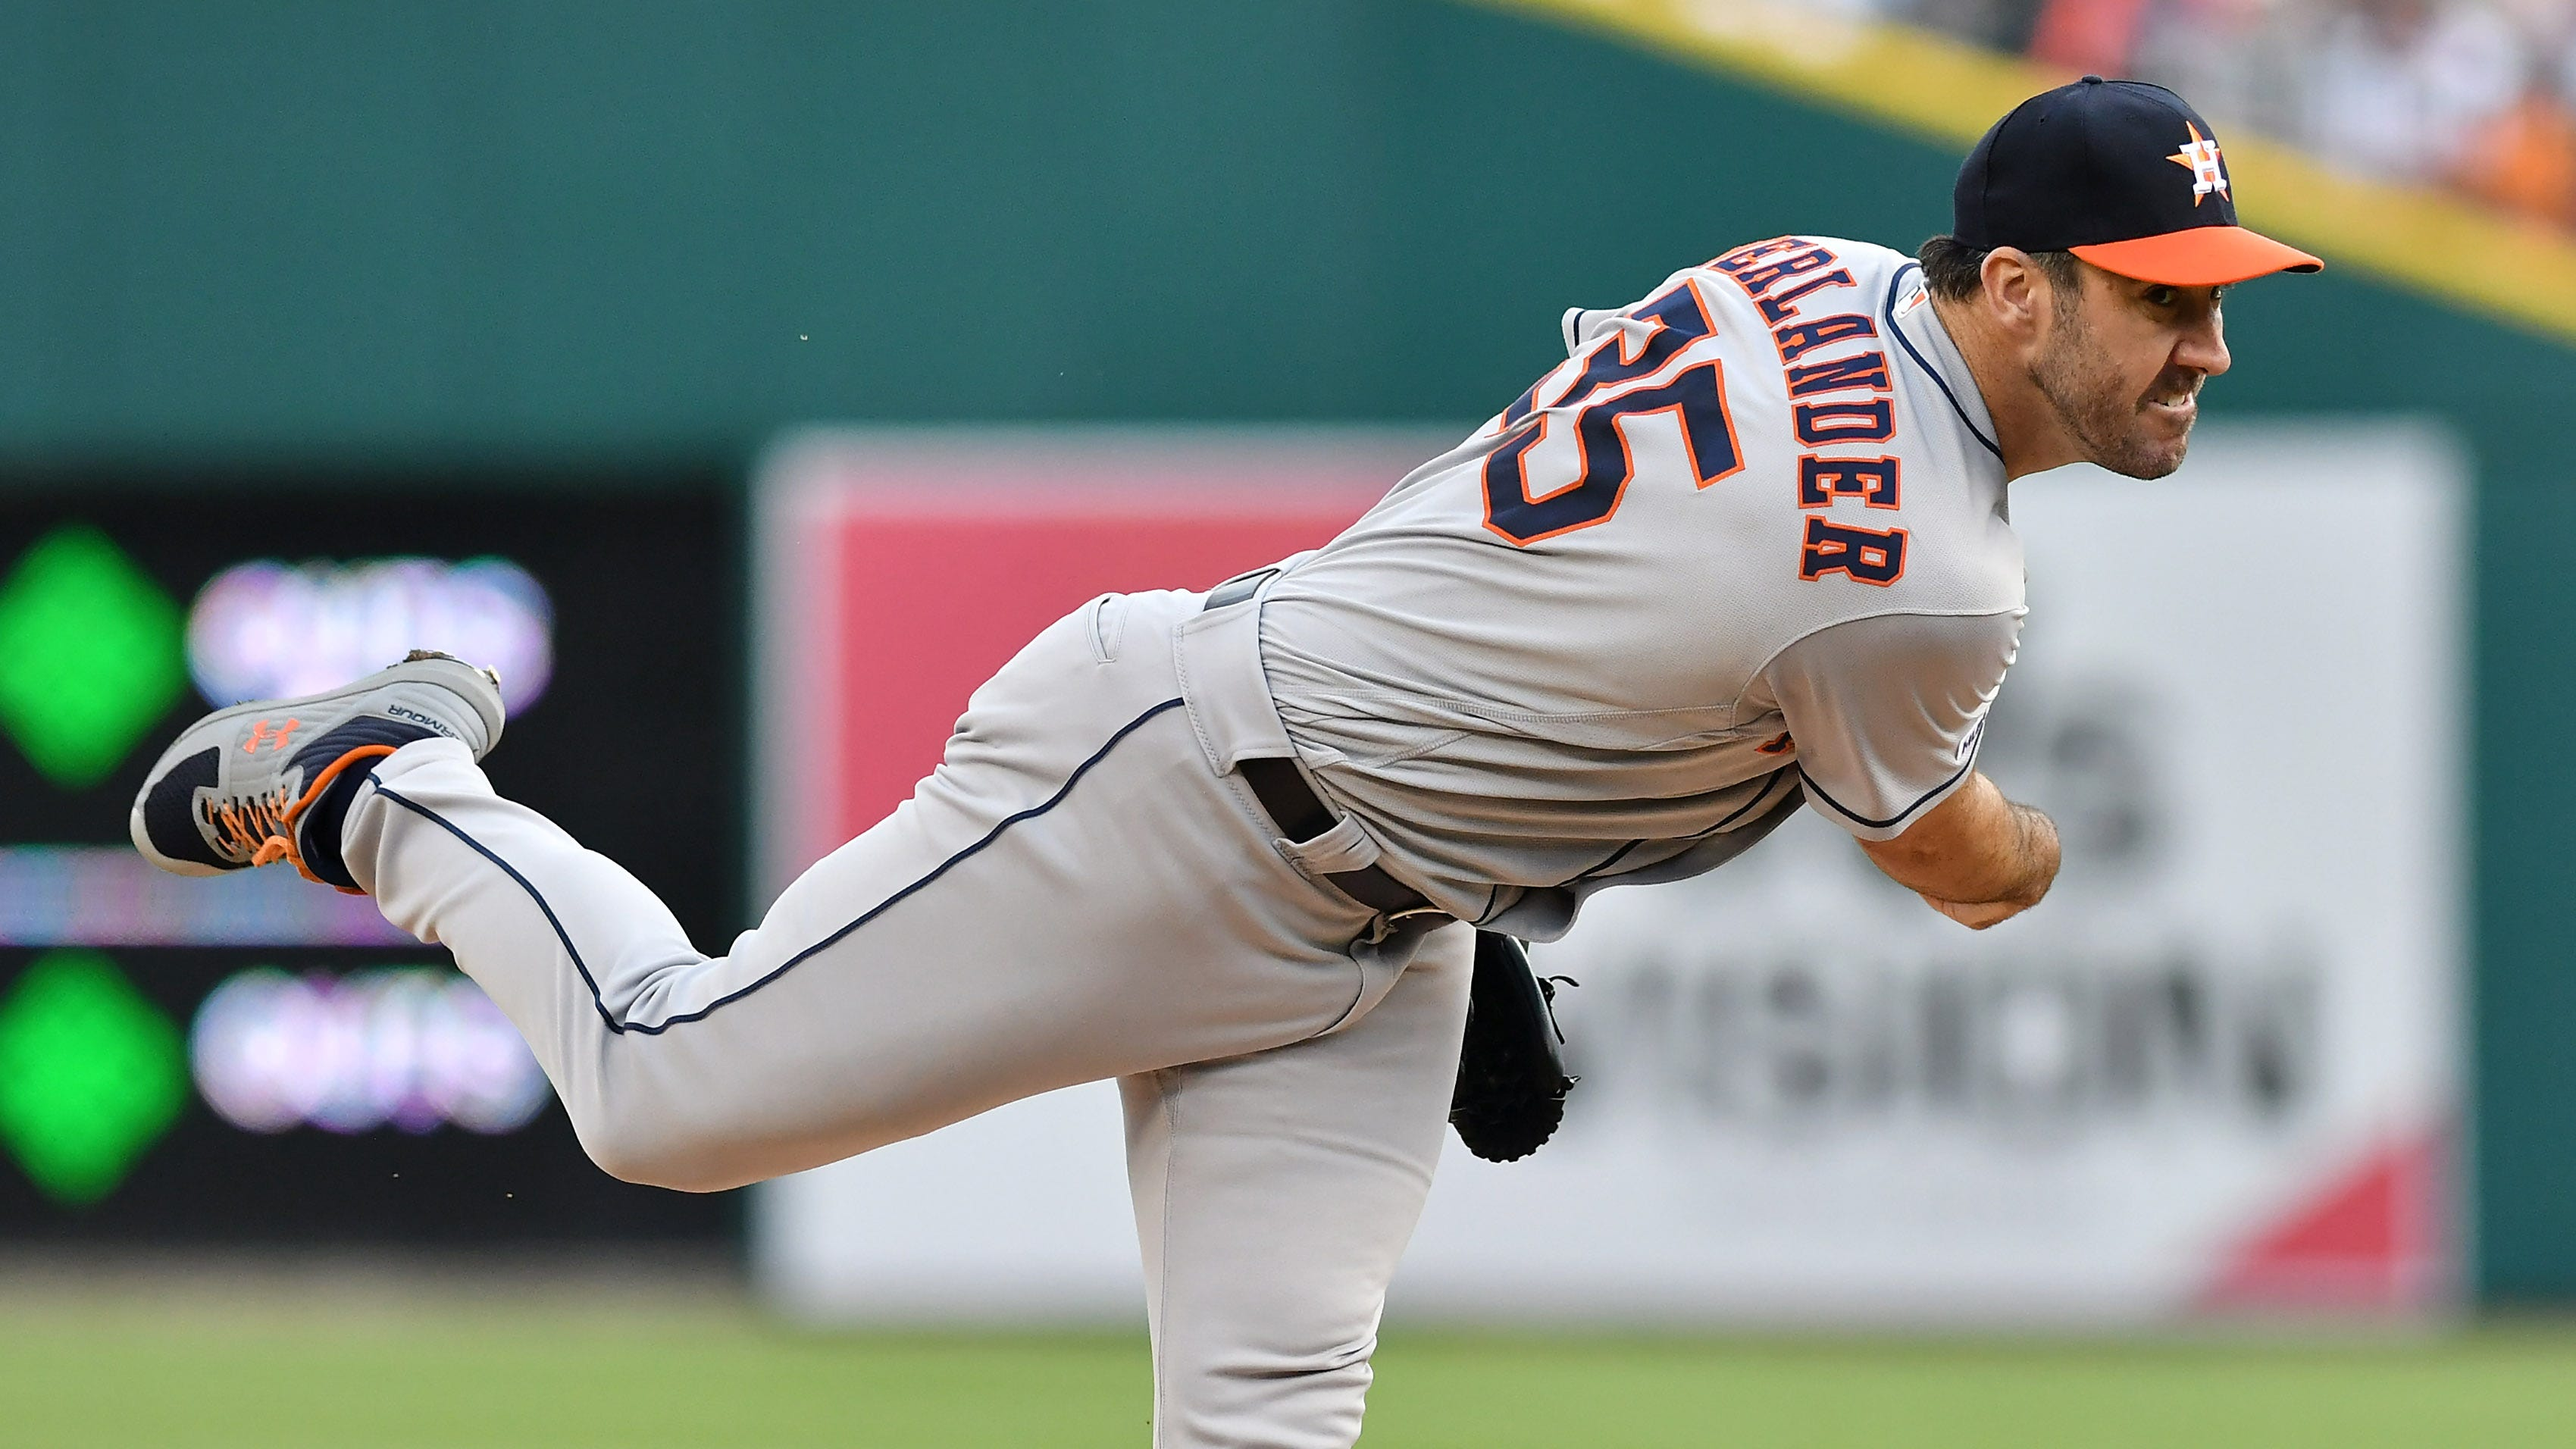 Just like old times: Verlander dazzles Tigers at Comerica Park